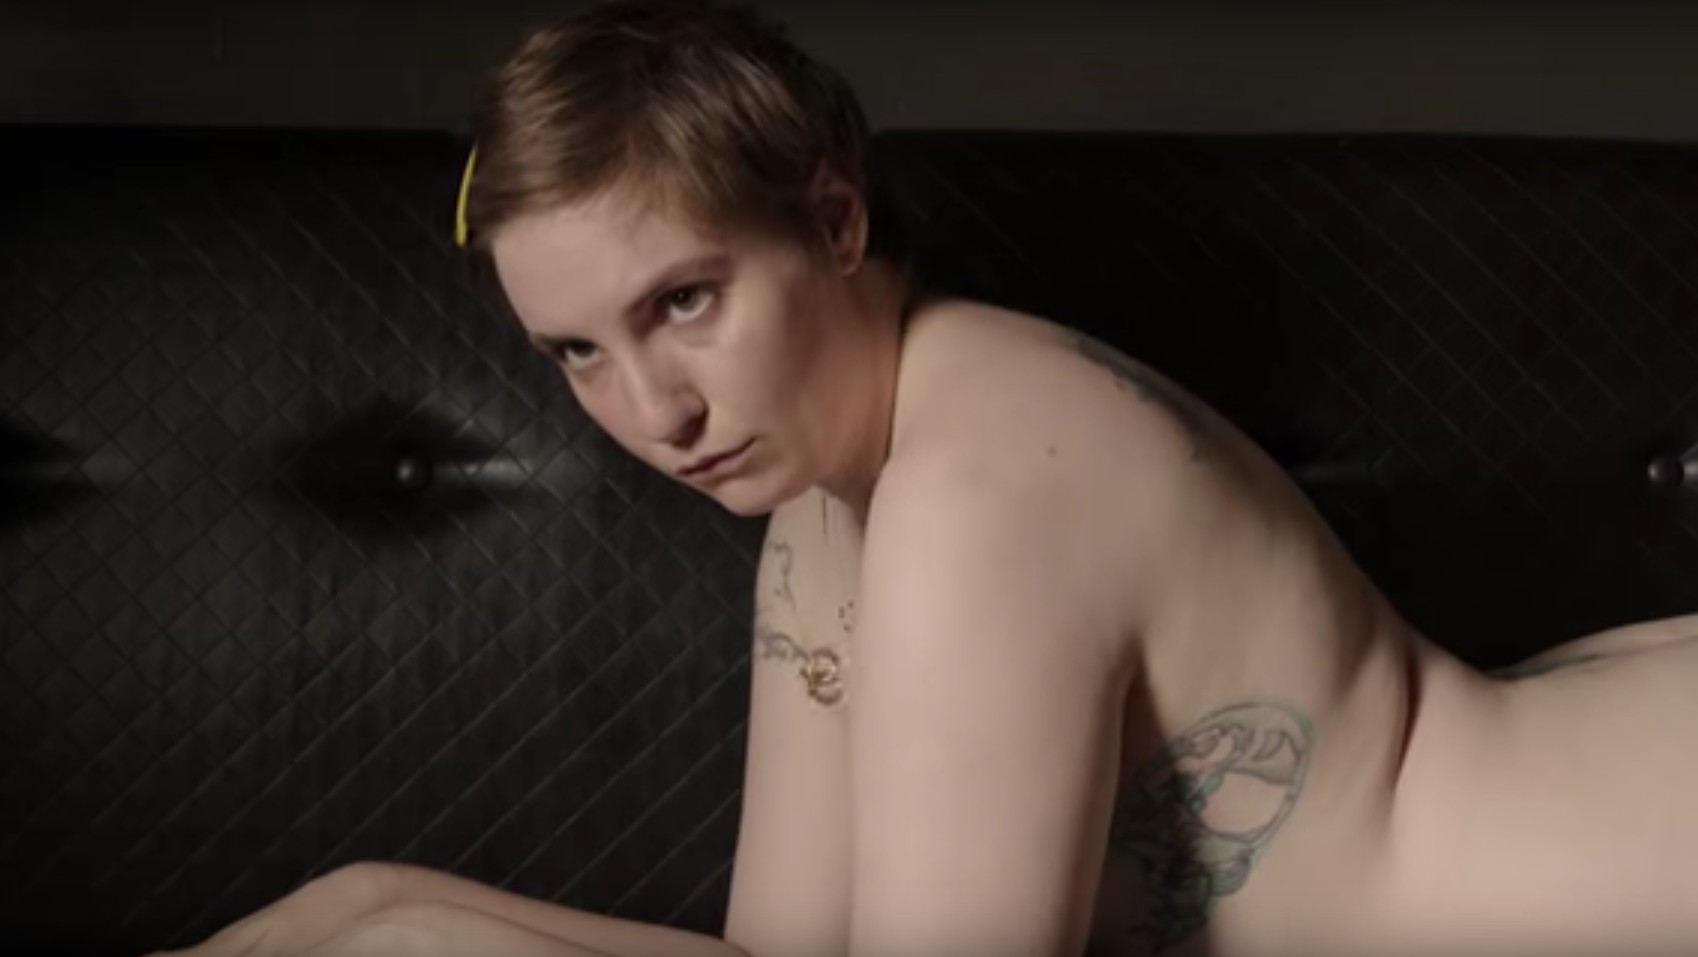 hannah takes nudes and shosh gets kawaii in new 'girls' trailer